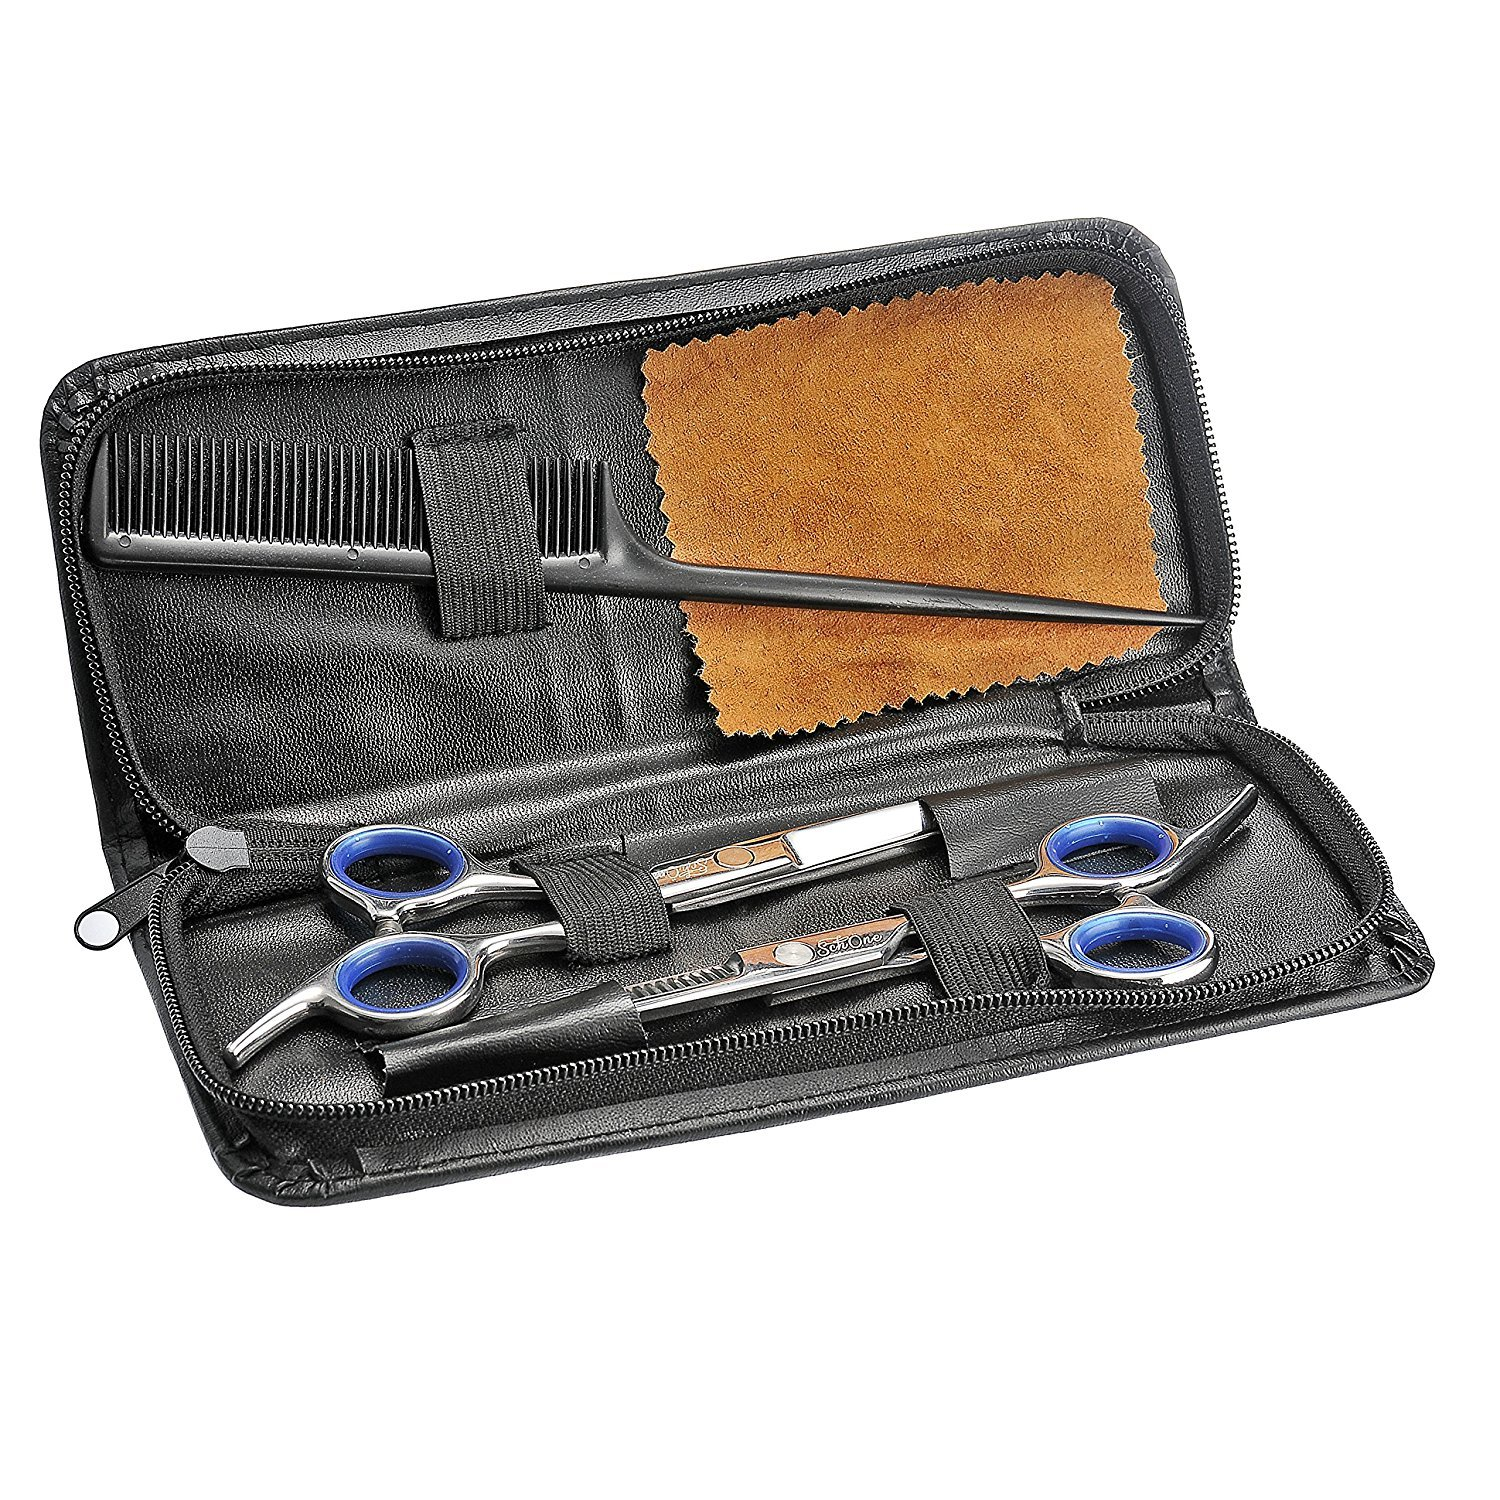 Schöne Professional Hair Cutting Scissors Shears Barber Thinning Set Kit with a Black Leather Case. - Barber Hair Cutting and Thinning/texturizing Scissors/shears Set - 6.5 Overall Length with Fine Adjustment Tension Screw - Japanese Stainless Steel - Sati